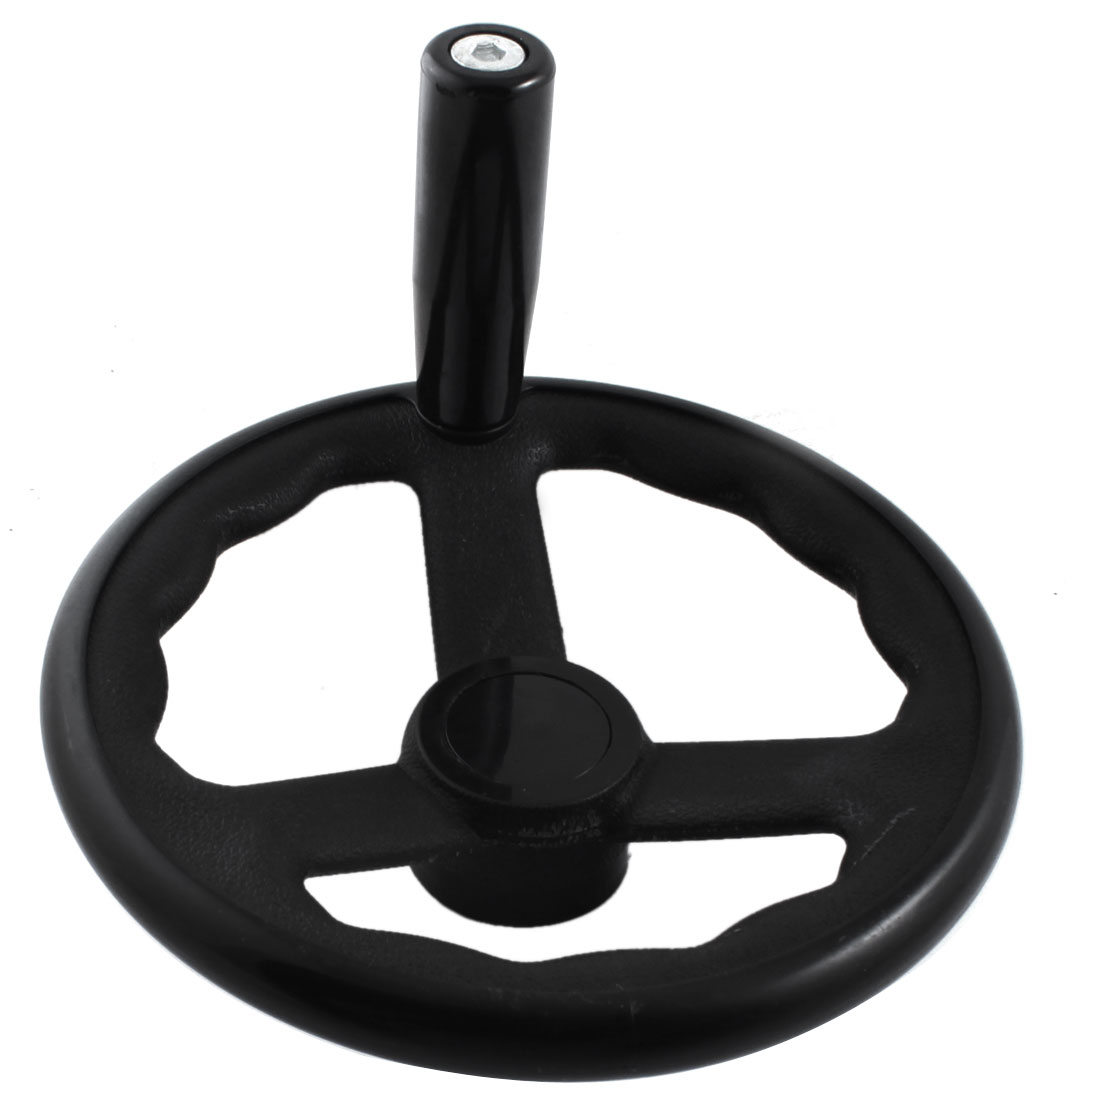 18mmx200mm Round Black Plastic Three Spoke Hand Wheel Handwheel w Removable Handle for Milling Machine